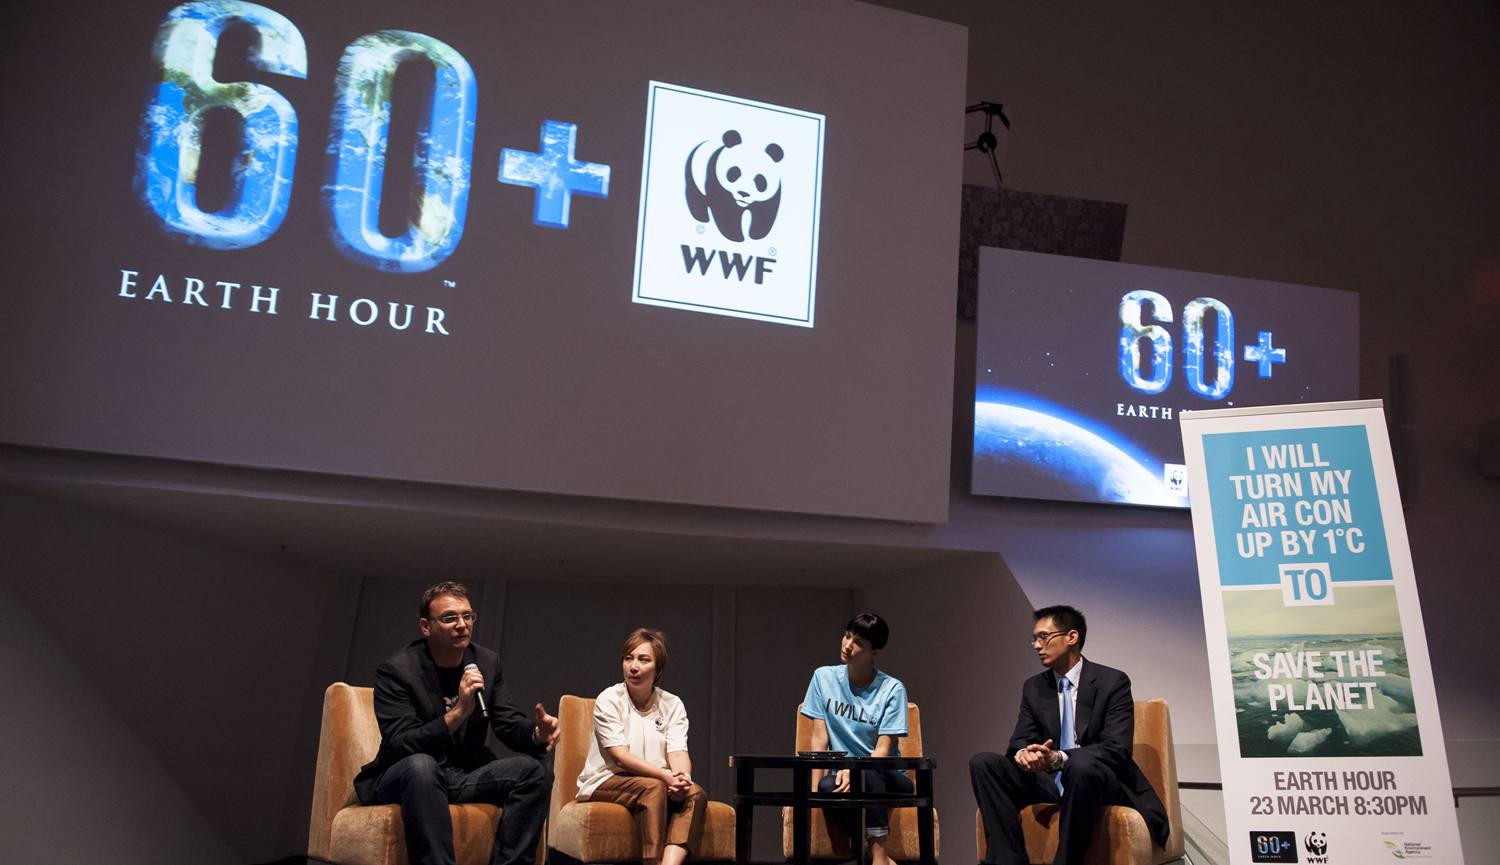 WWF Earth Hour Press Conference